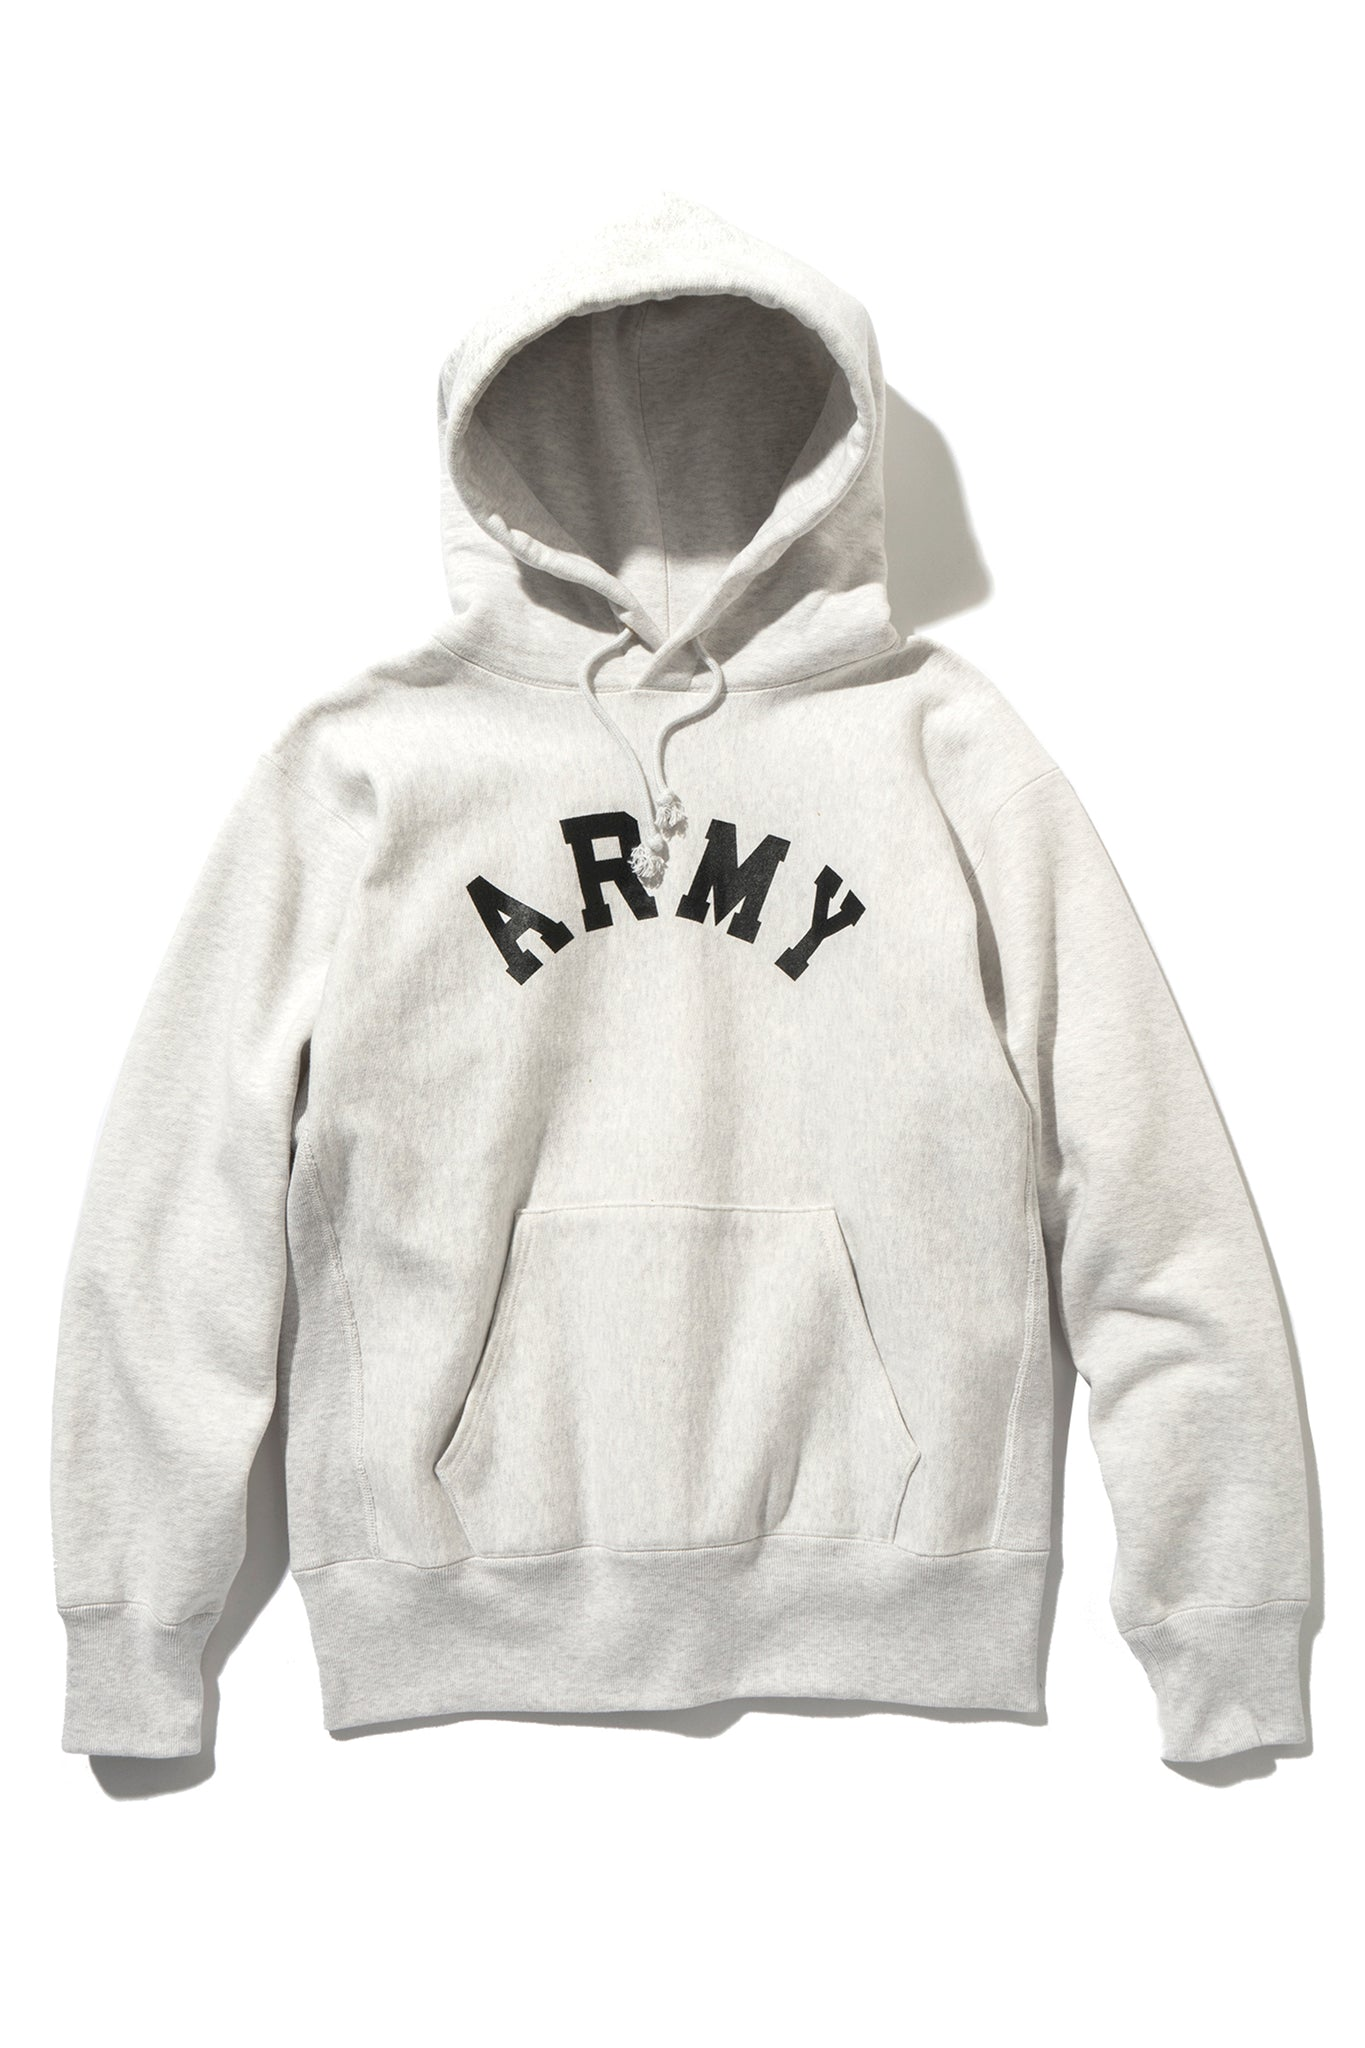 HOODED SWEATSHIRT / ARMY